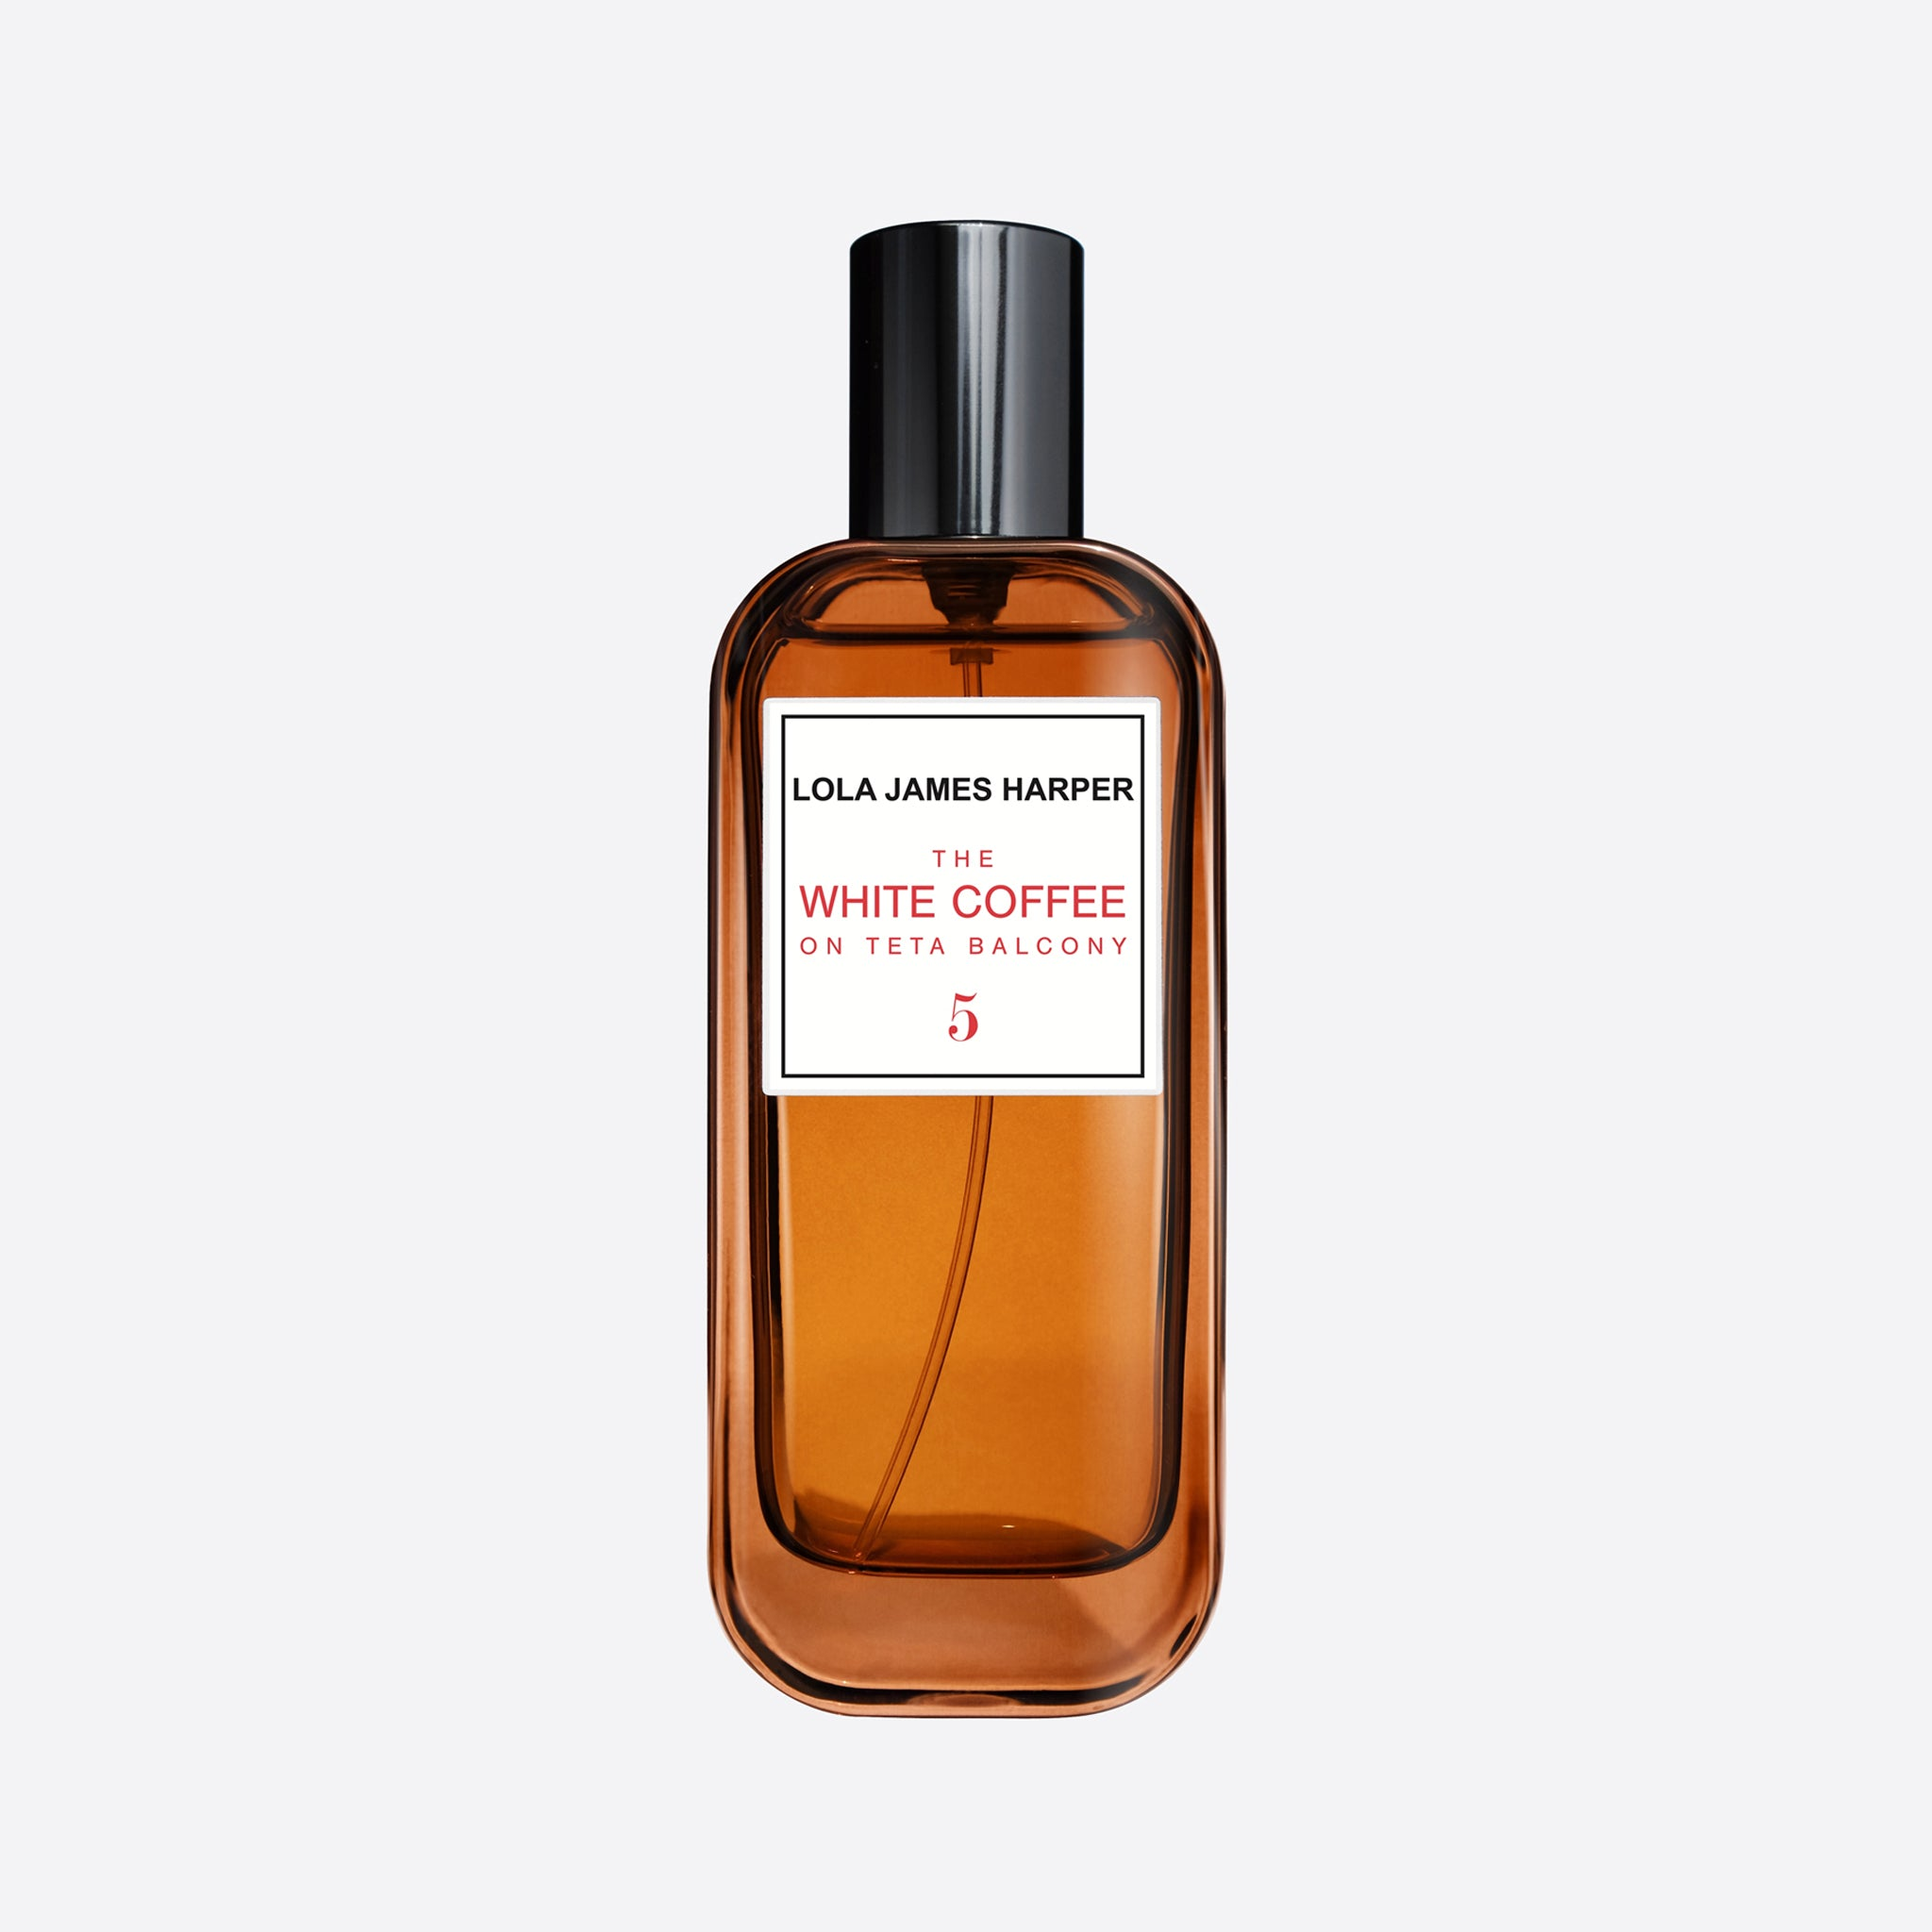 Lola James Harper Room Spray - White Coffee